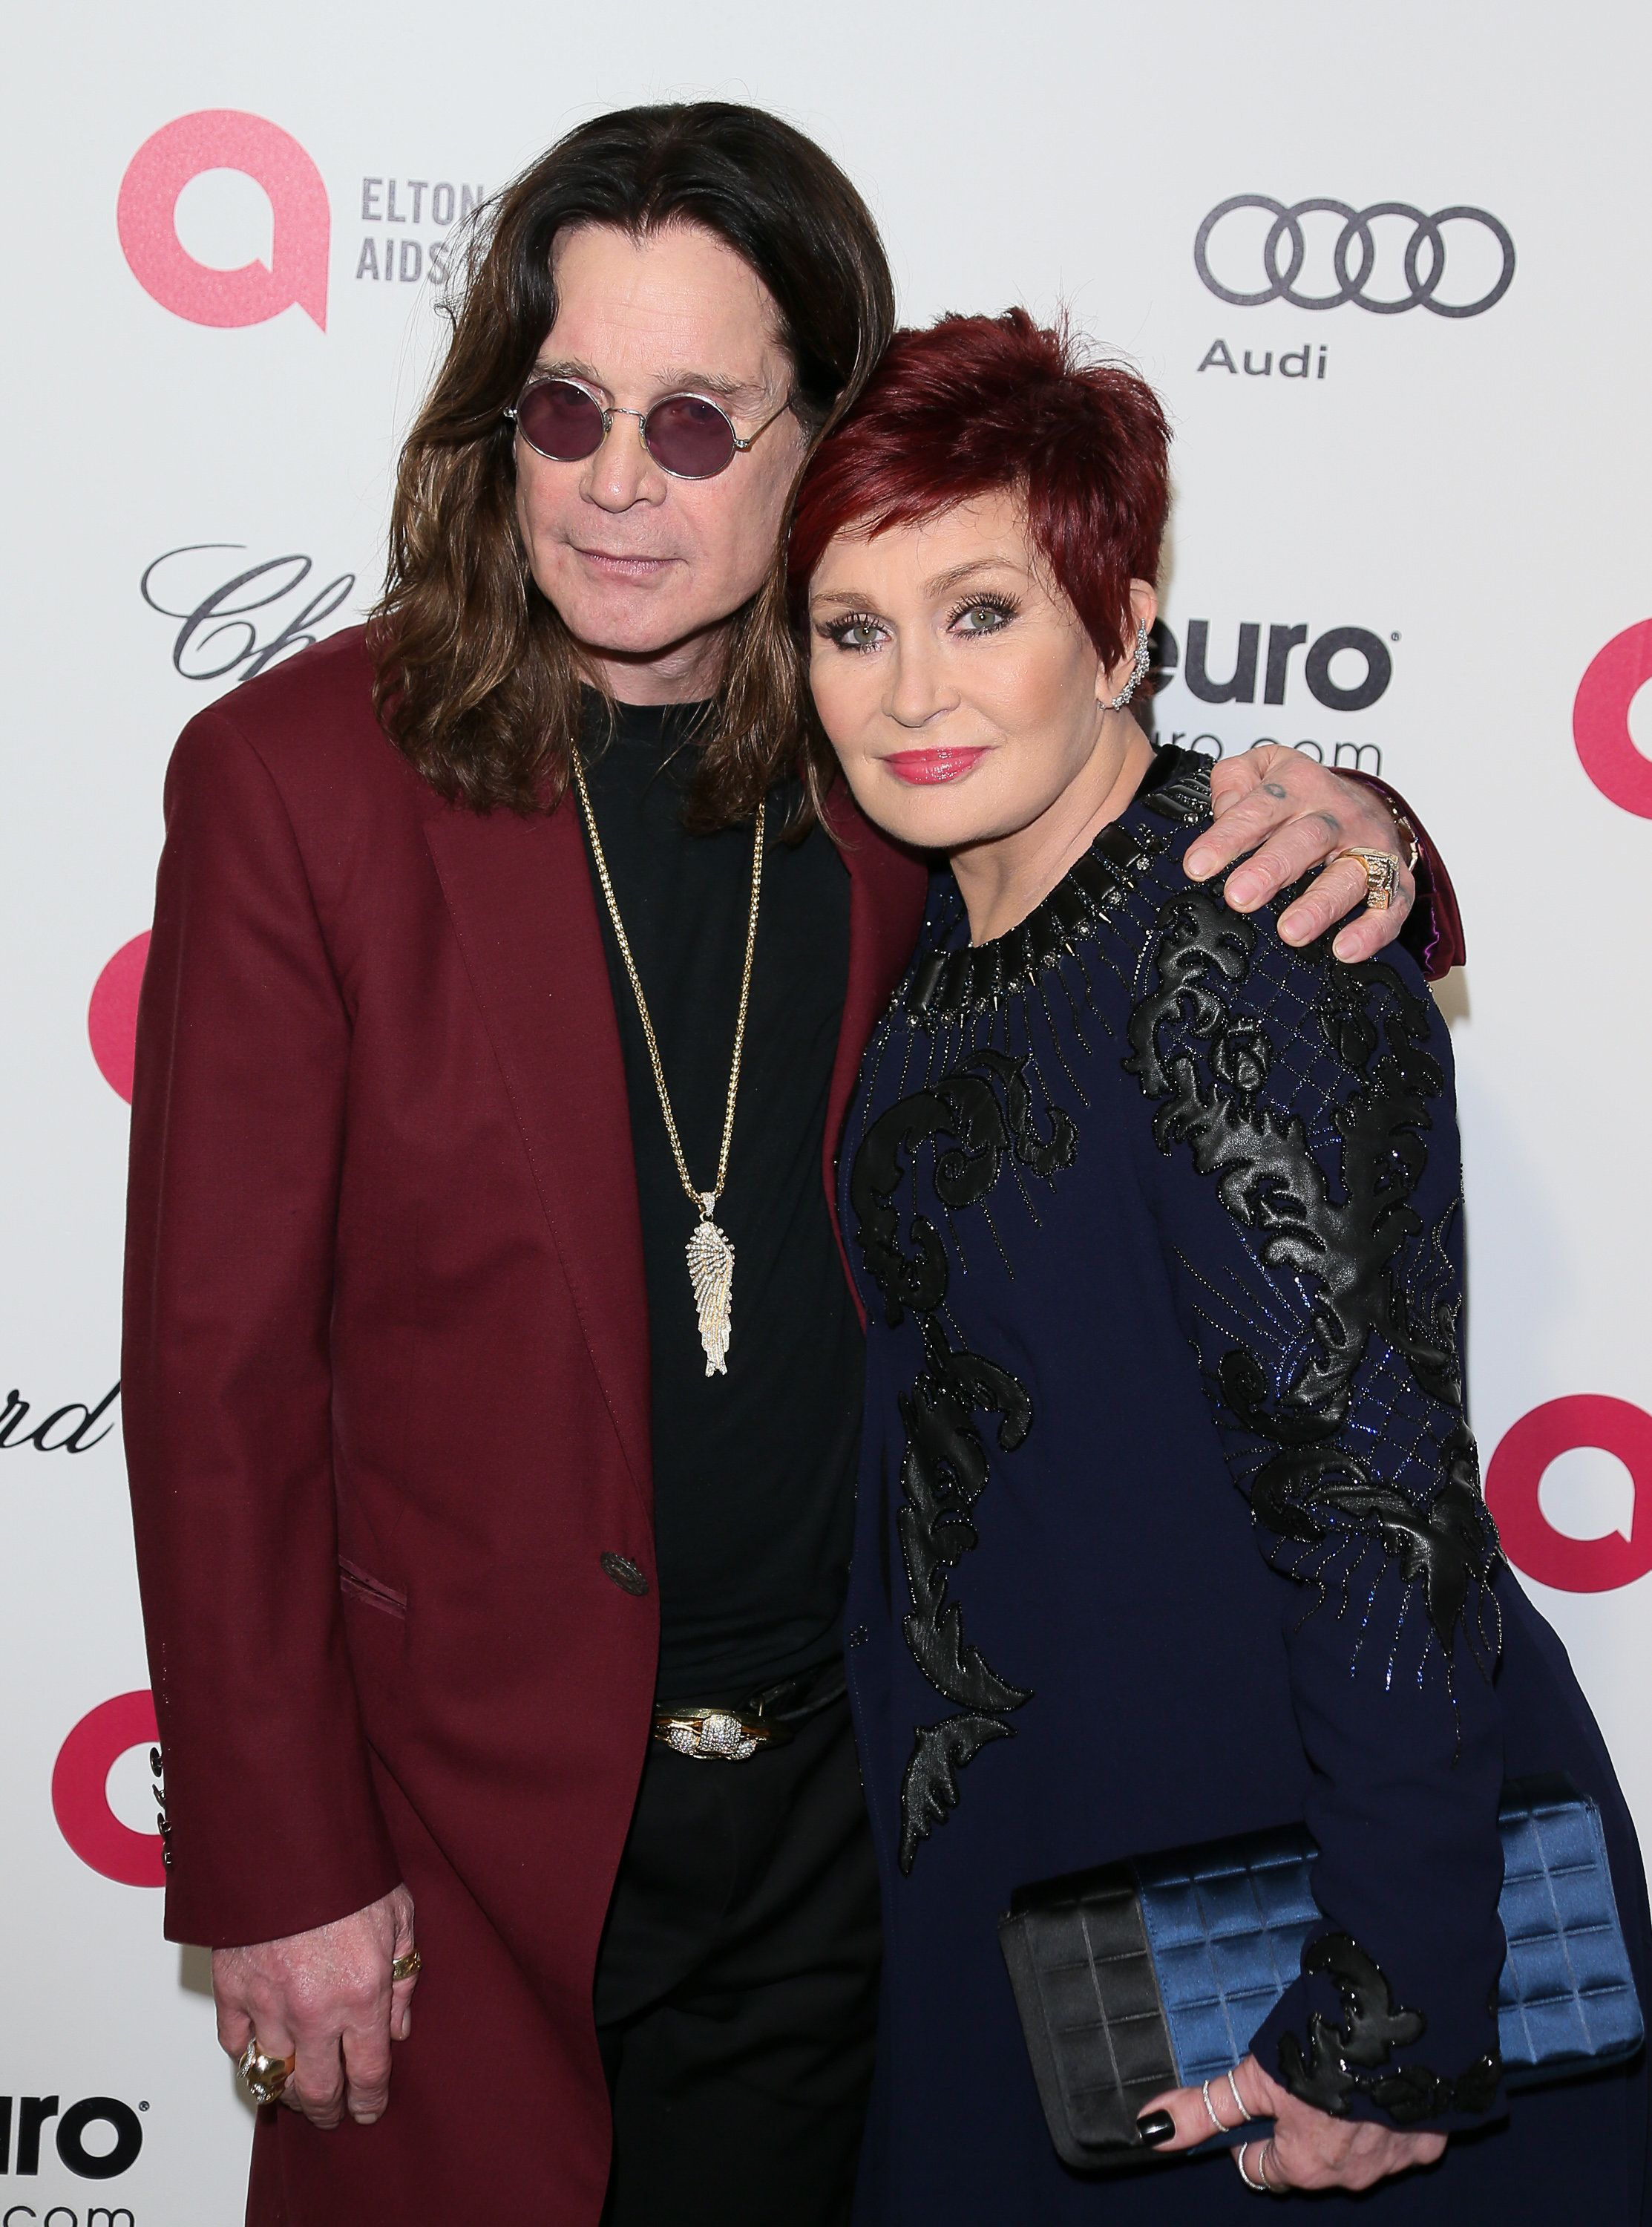 WEST HOLLYWOOD, CA - FEBRUARY 22: Ozzy Osbourne and Sharon Osbourne attend the 23rd Annual Elton John AIDS Foundation Academy Awards Viewing Party on February 22, 2015 in West Hollywood, California.(Photo by JB Lacroix/WireImage)